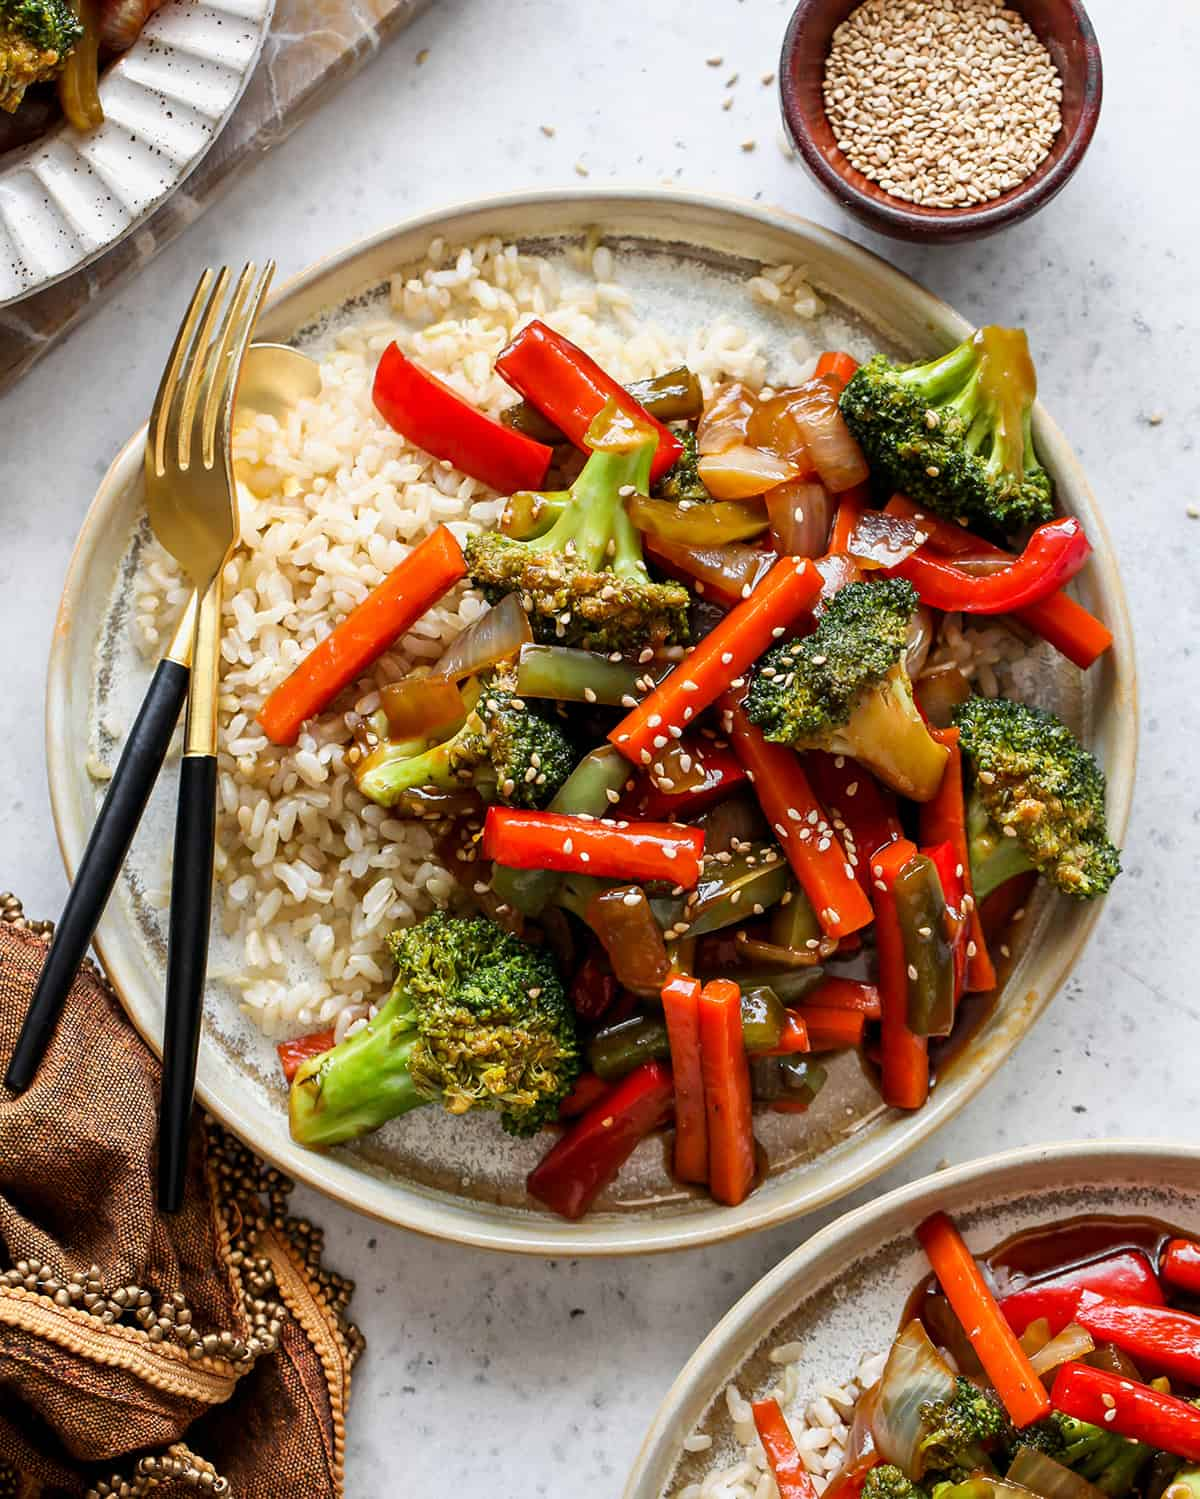 overhead view of a plate of stir fry vegetables with rice